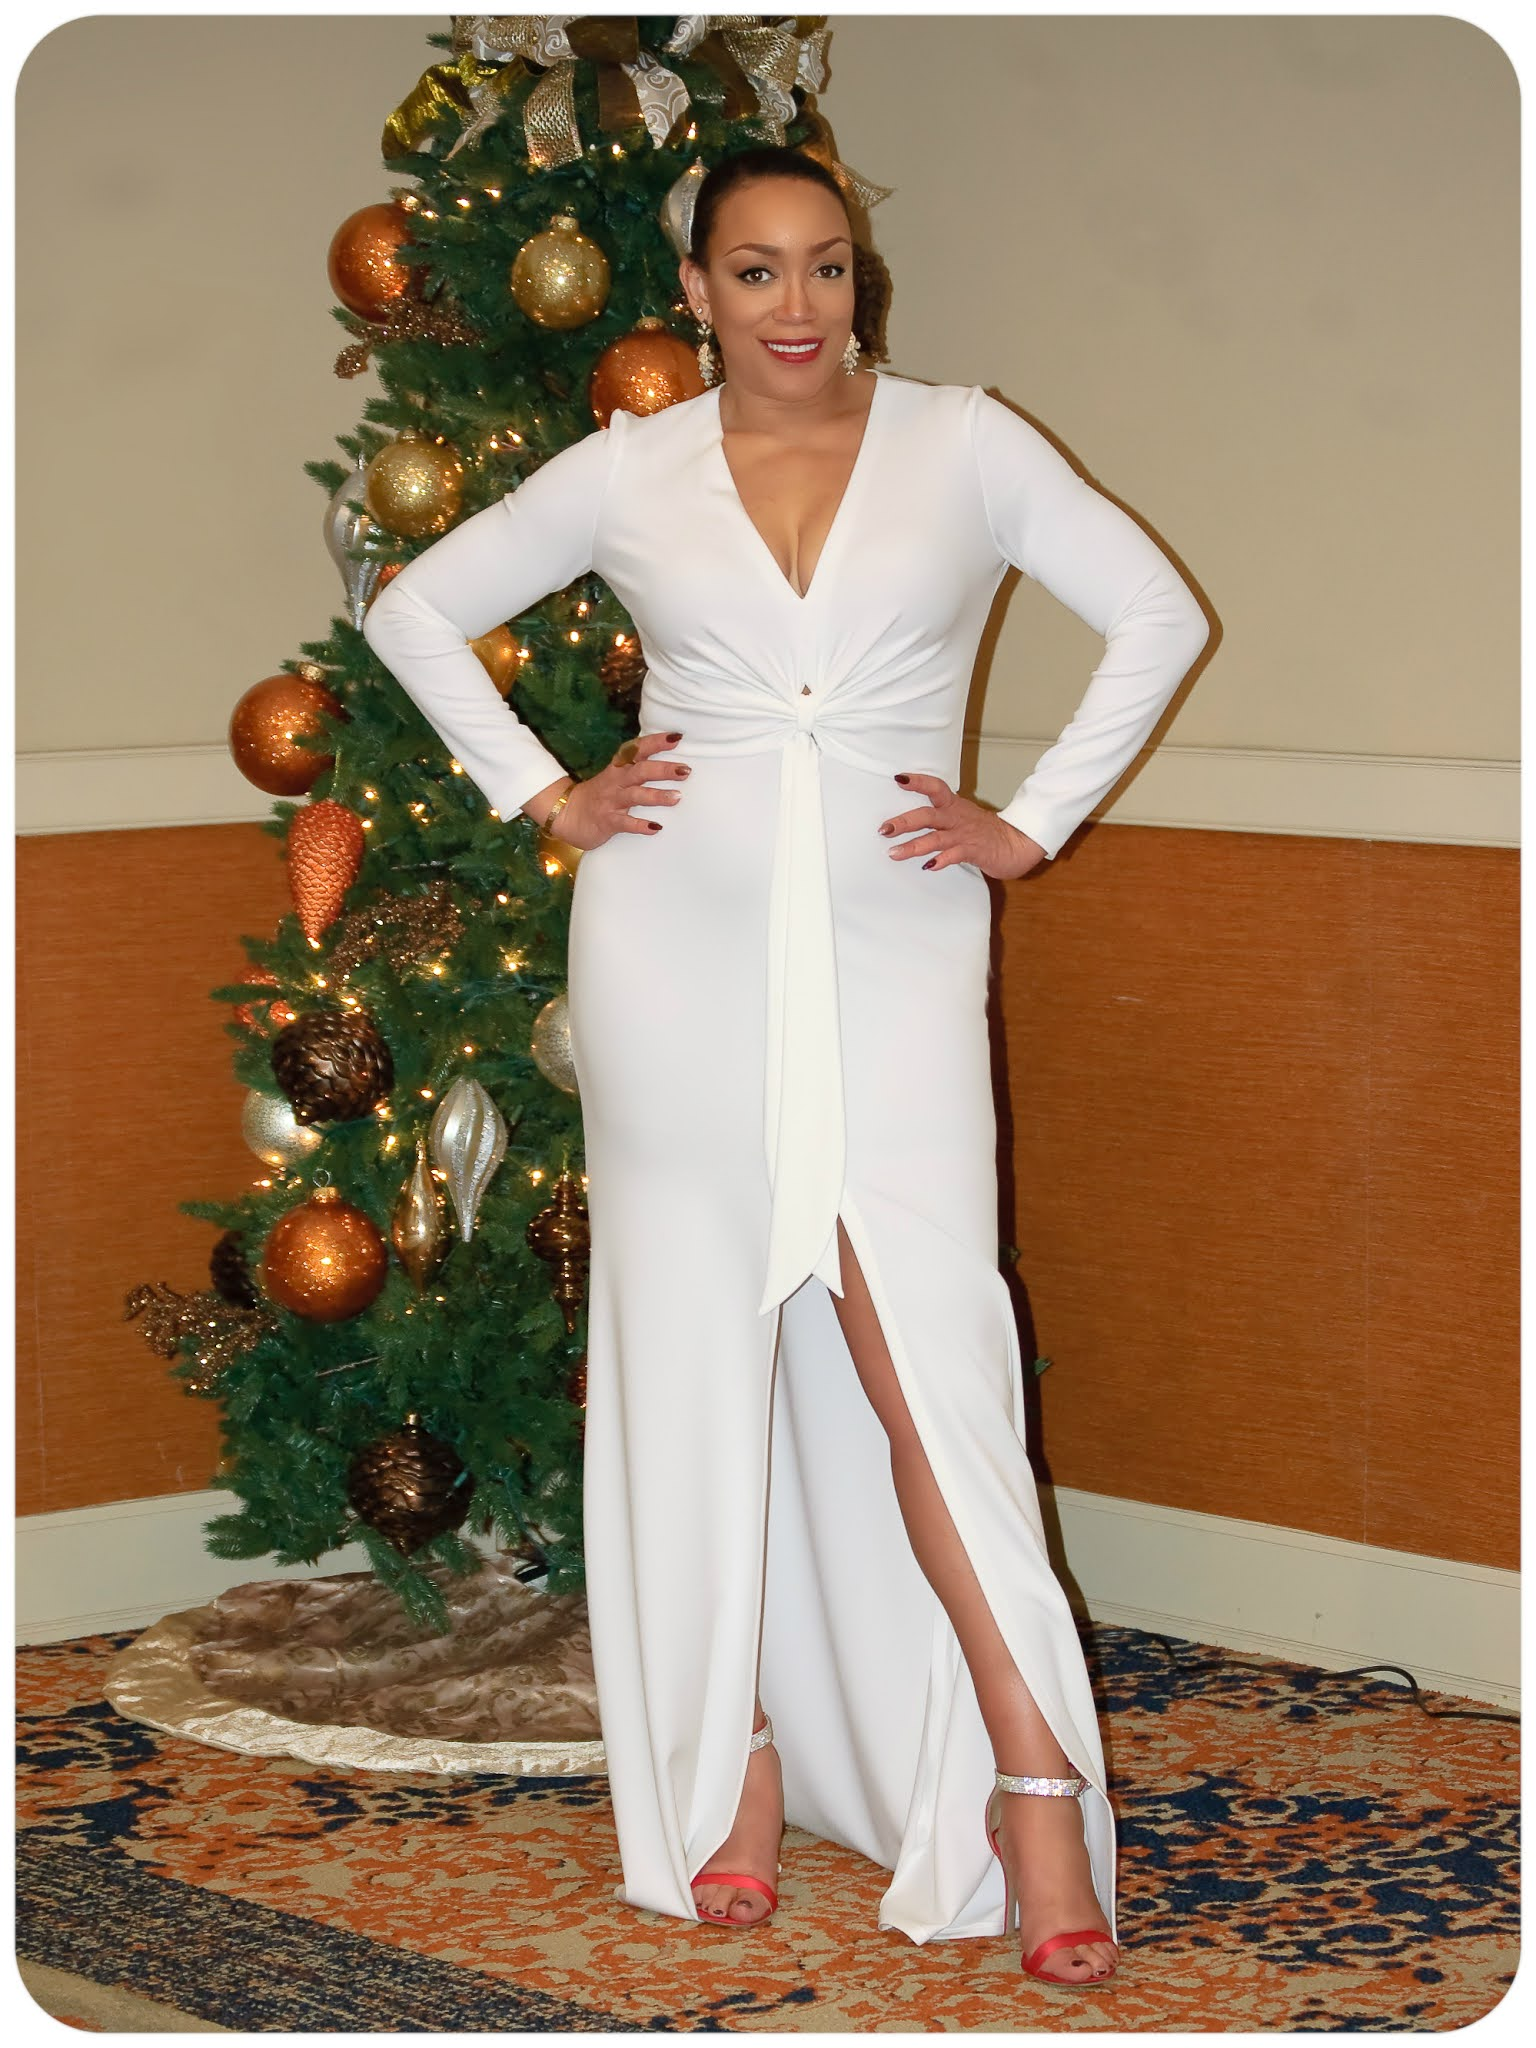 McCall's 8037 - Winter White Evening Gown - Erica Bunker DIY Style!